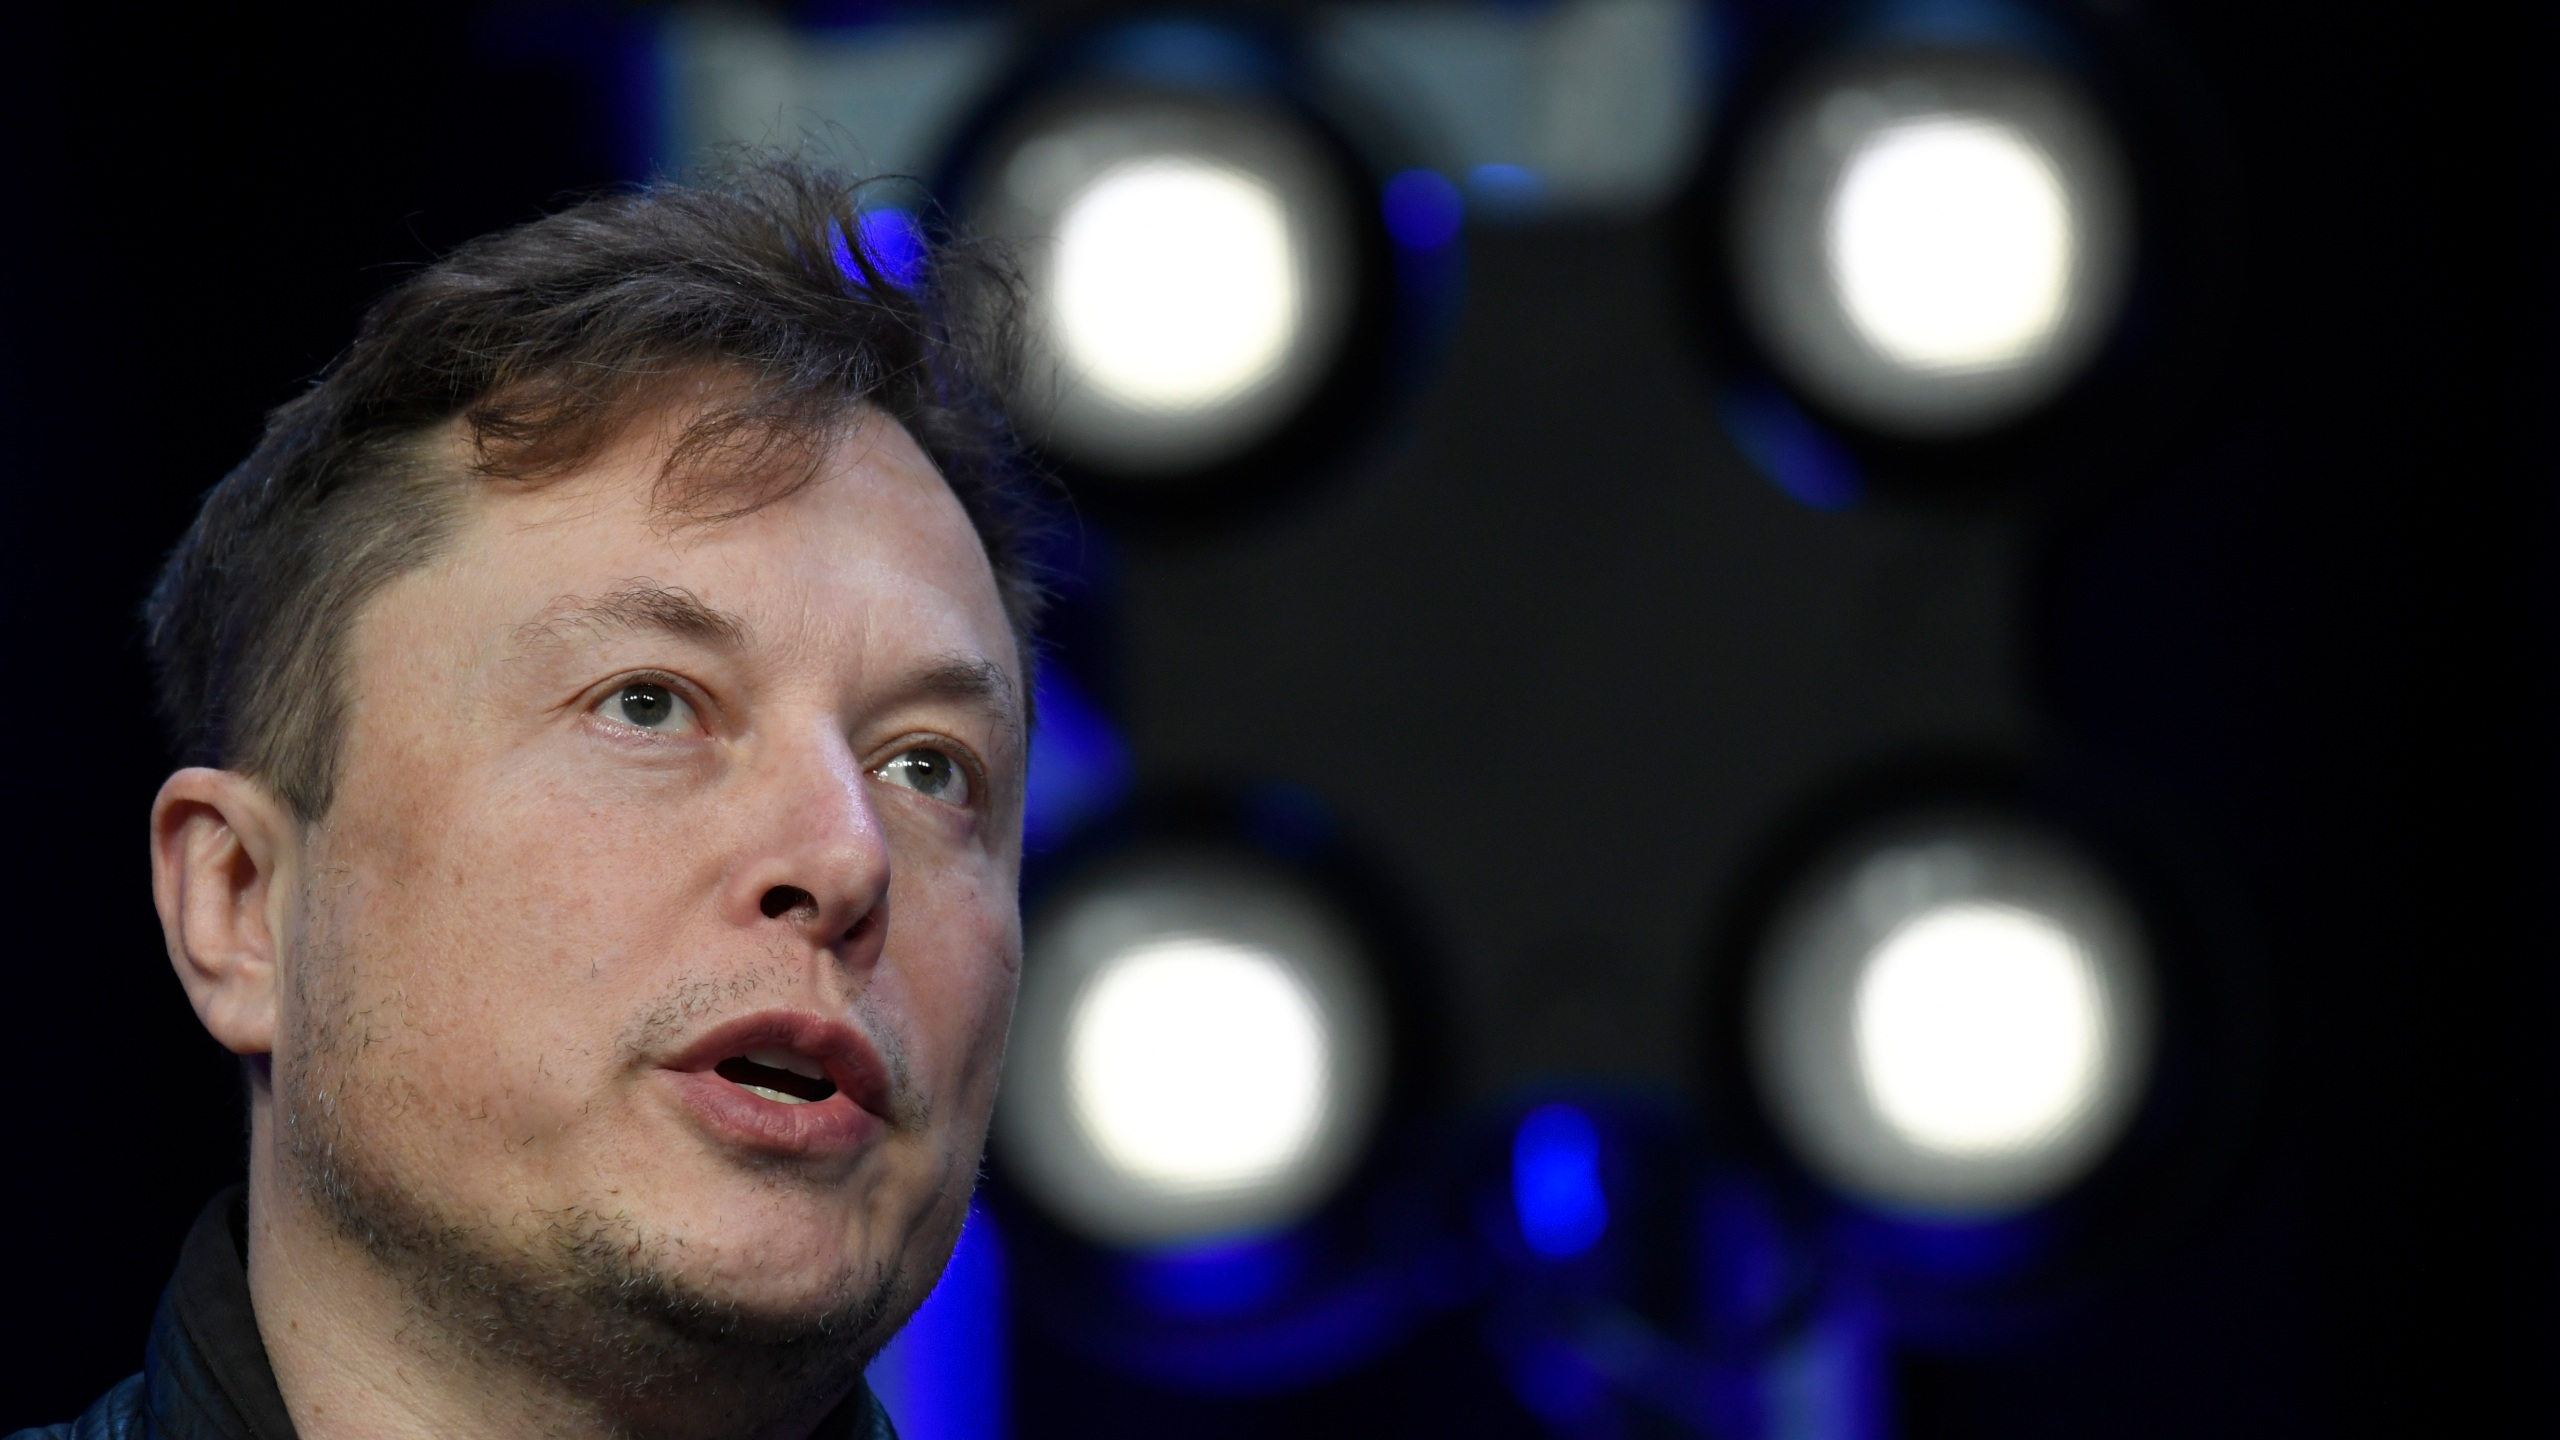 Tesla and SpaceX CEO Elon Musk speaks at the SATELLITE Conference and Exhibition in Washington on March 9, 2020. (Susan Walsh / Associated Press)